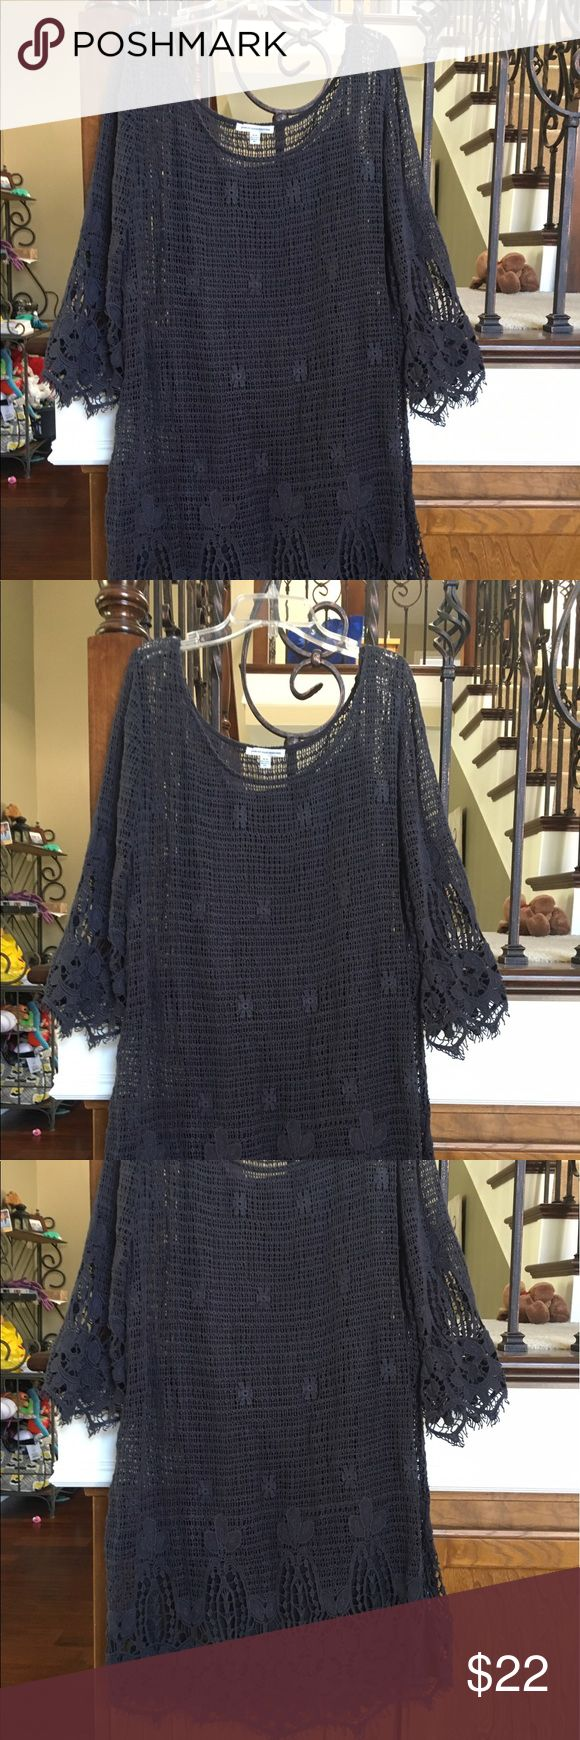 American Eagle Outfitters Grey Boho Dress M EUC American Eagle Outfitters Grey Long Sleeve Boho Dress with Crochet Detail- Size M. Cute outfit to wear with cowboy boots or simple sandals! EUC No Flaws! American Eagle Outfitters Dresses Long Sleeve